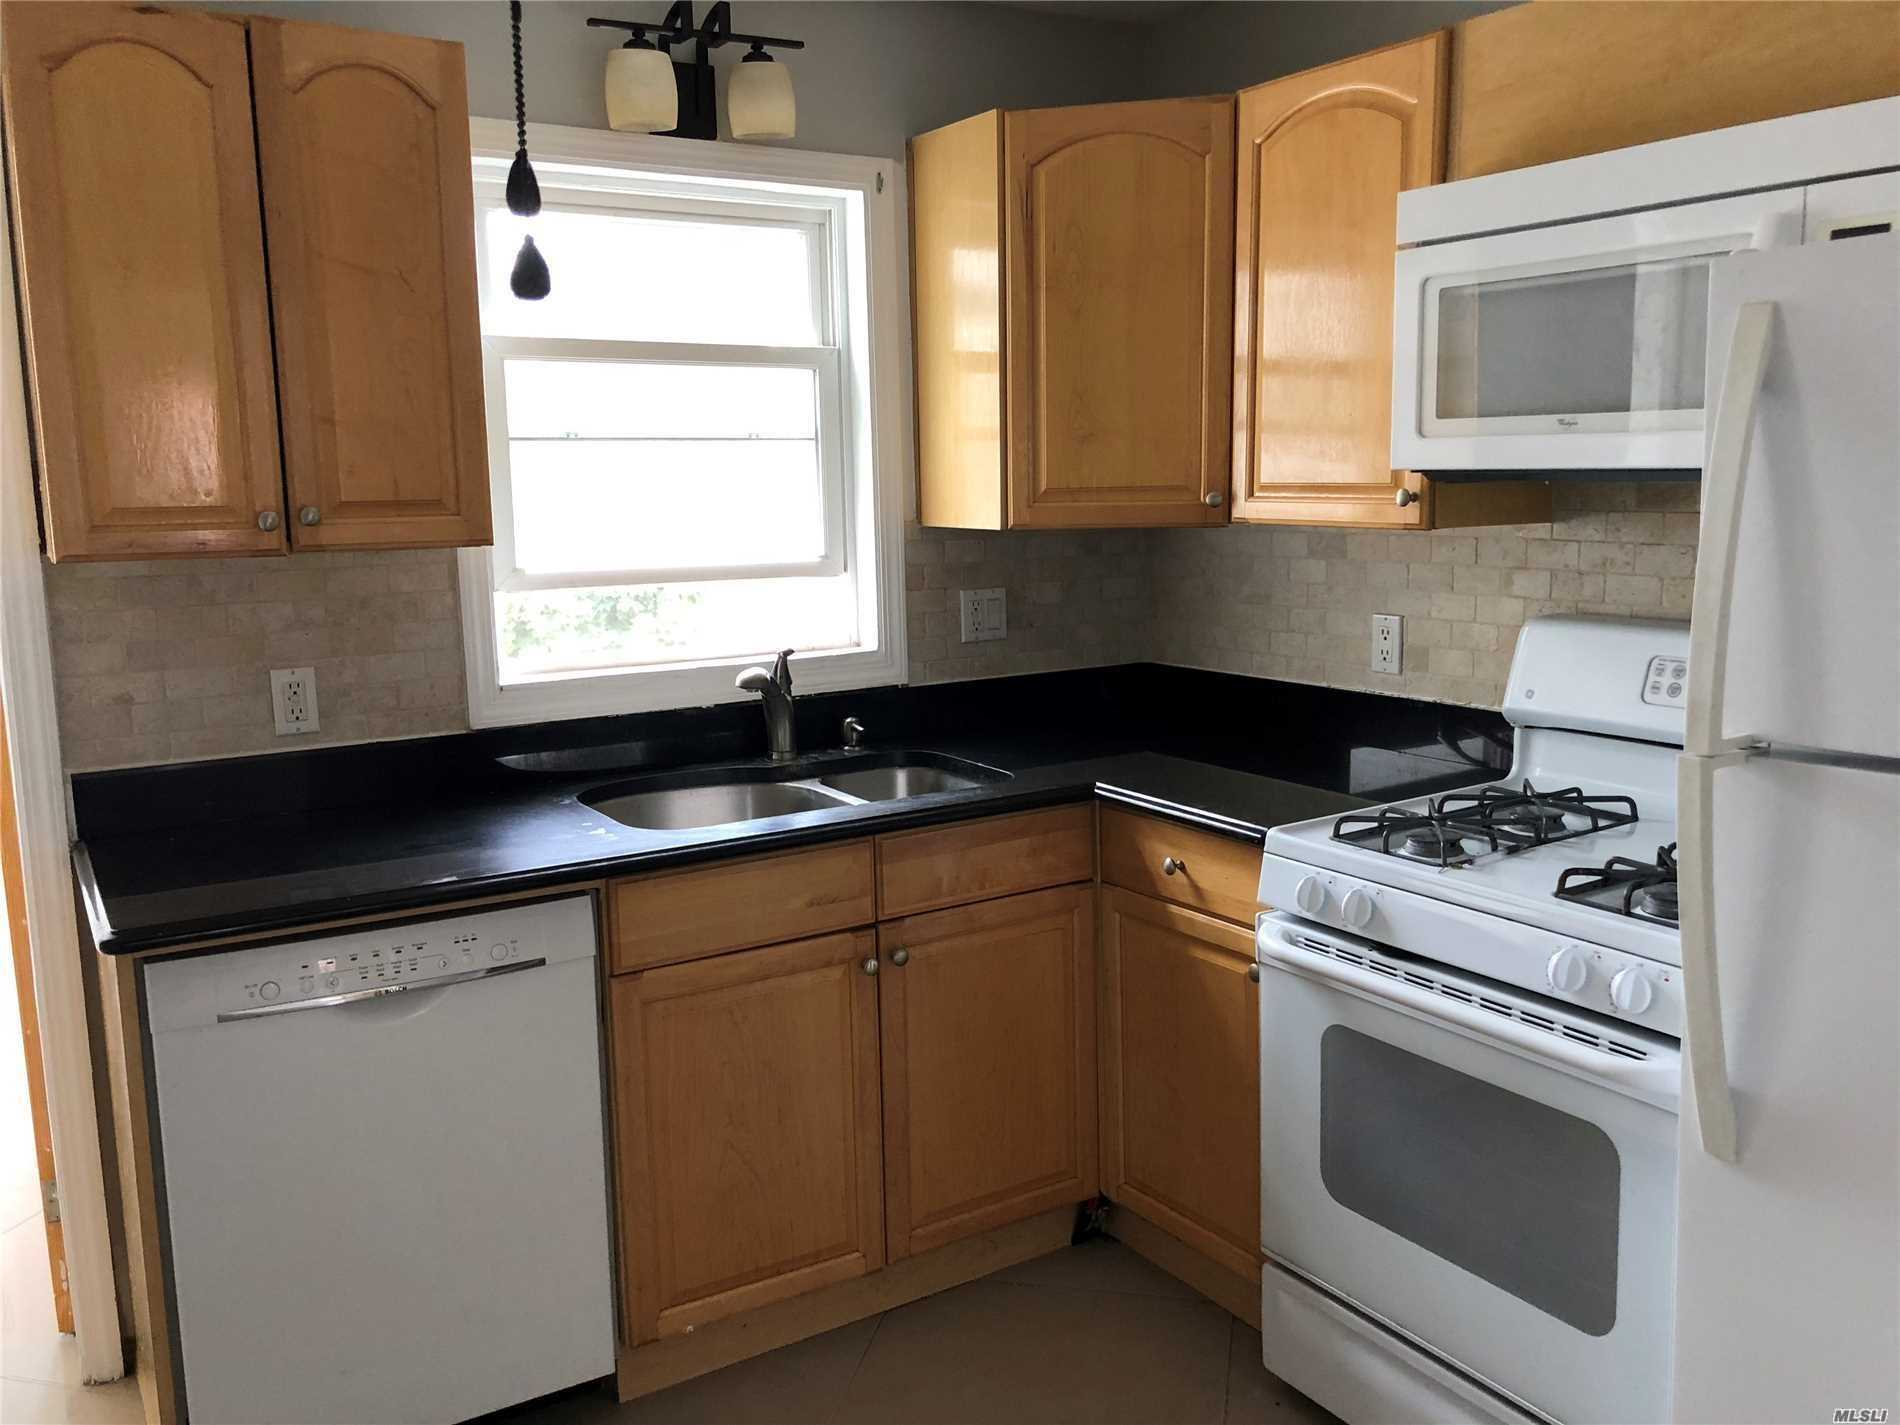 Mint 2 Bed 1 Bath Diamond Condition , New Kitchen With Double Sink , Porcelain Floors Throughout, 1 Car Pkg , Steps To Train And Stores And Beautiful Park